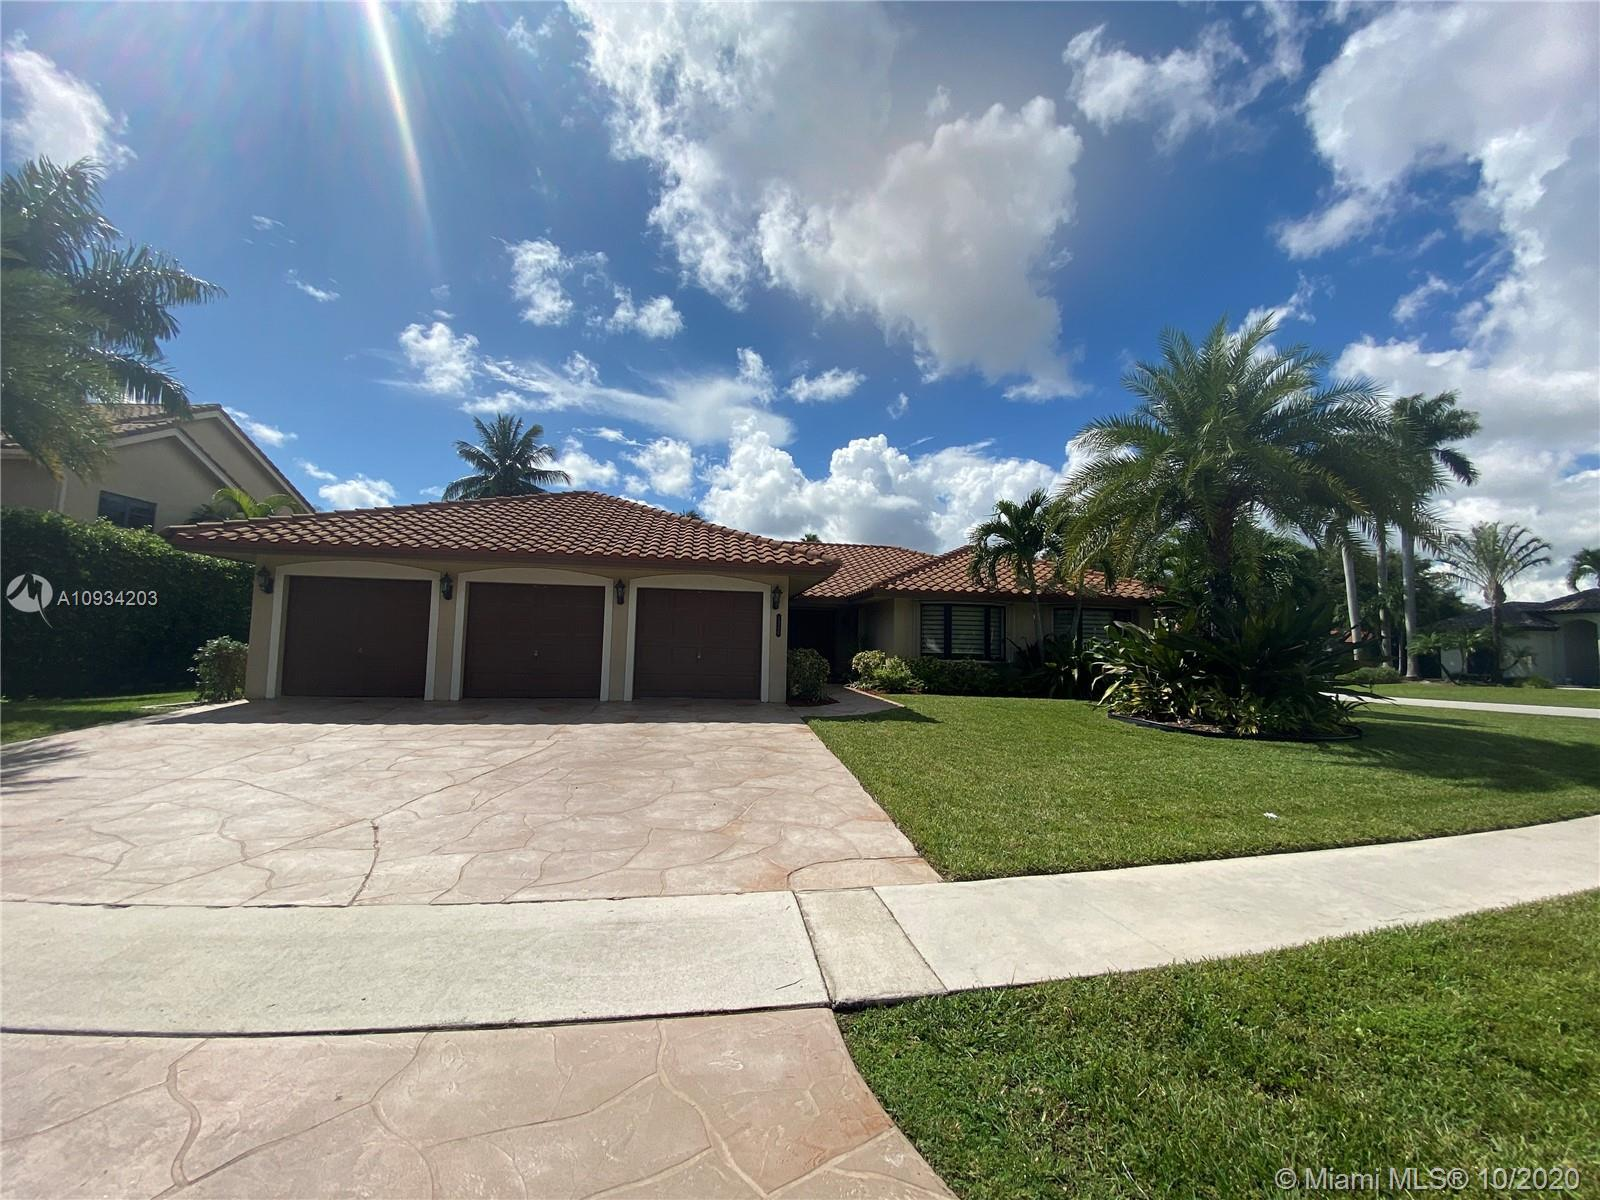 A MUST SEE, MOVE IN READY !!! Gorgeous updated home in 24 hour manned gated community. 5 bedrooms +